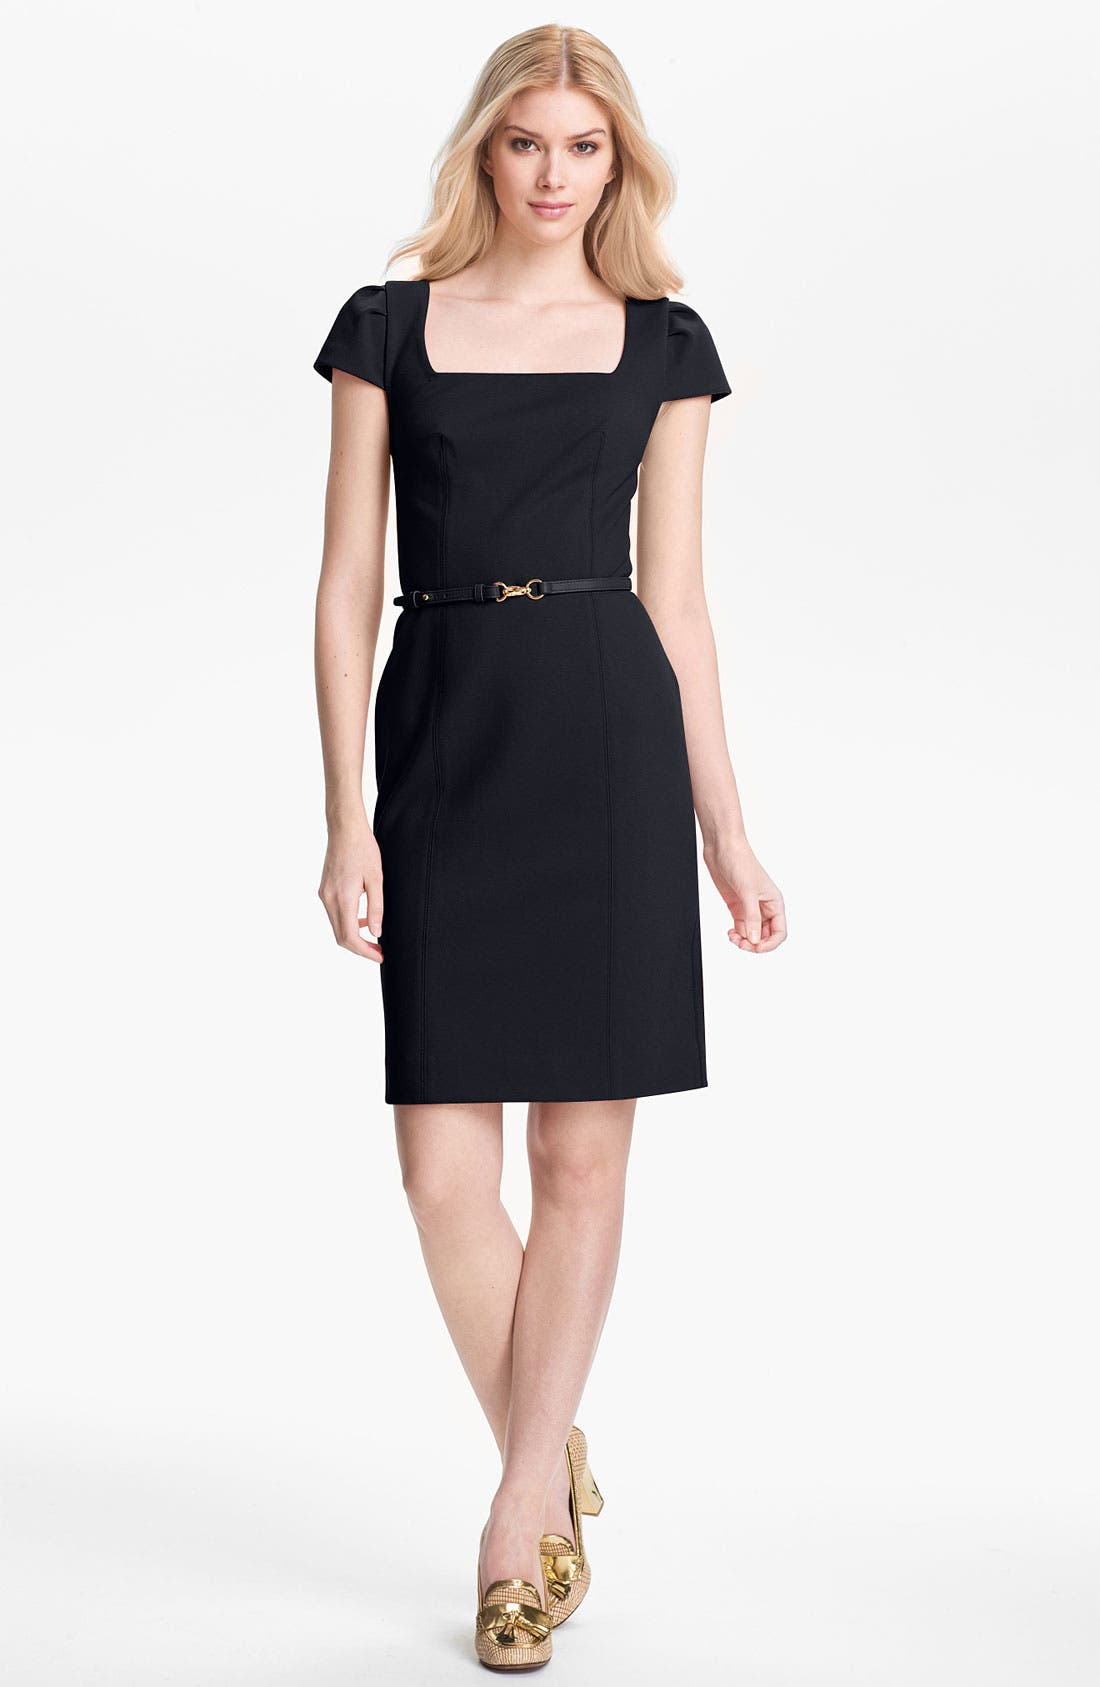 Alternate Image 1 Selected - Tory Burch 'Heather' Stretch Sheath Dress